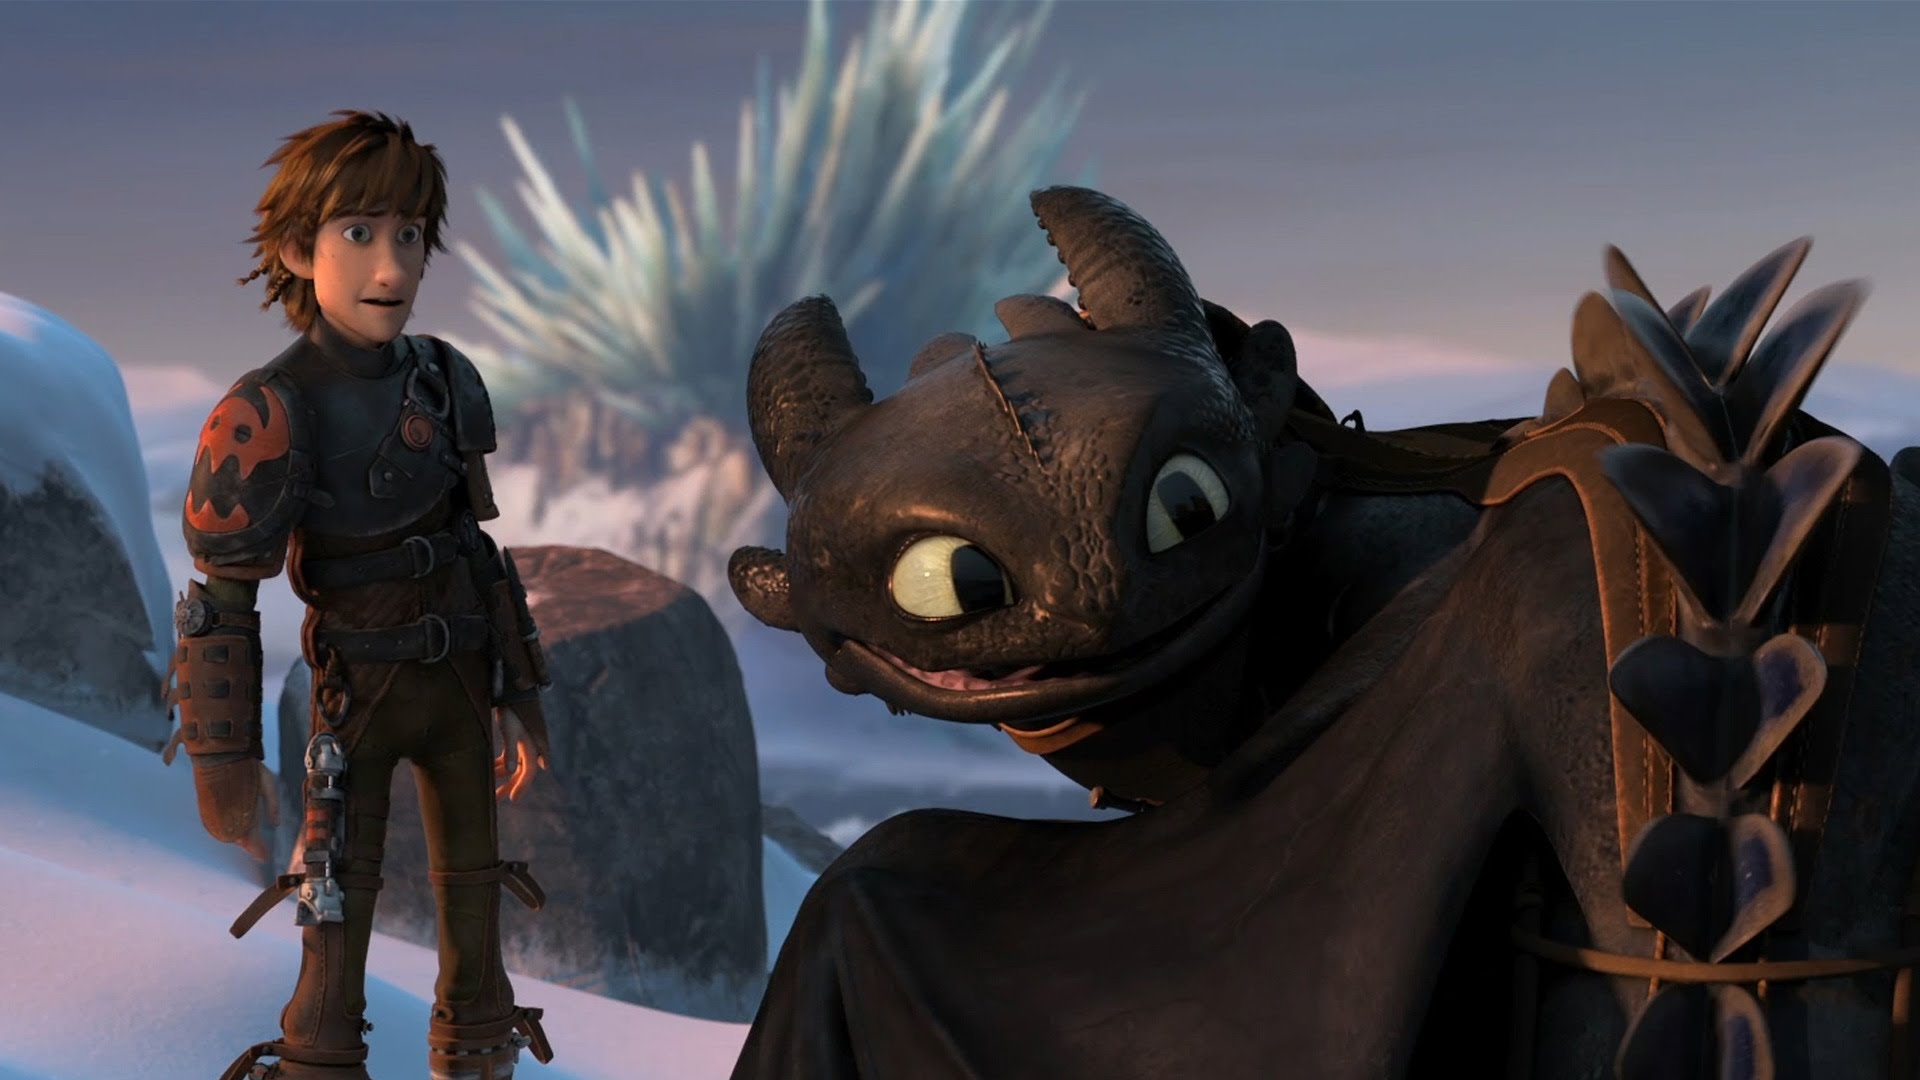 Hiccup How To Train Your Dragon 2 Cosplay How-to-train-your-dragon-3- | 1920 x 1080 jpeg 176kB